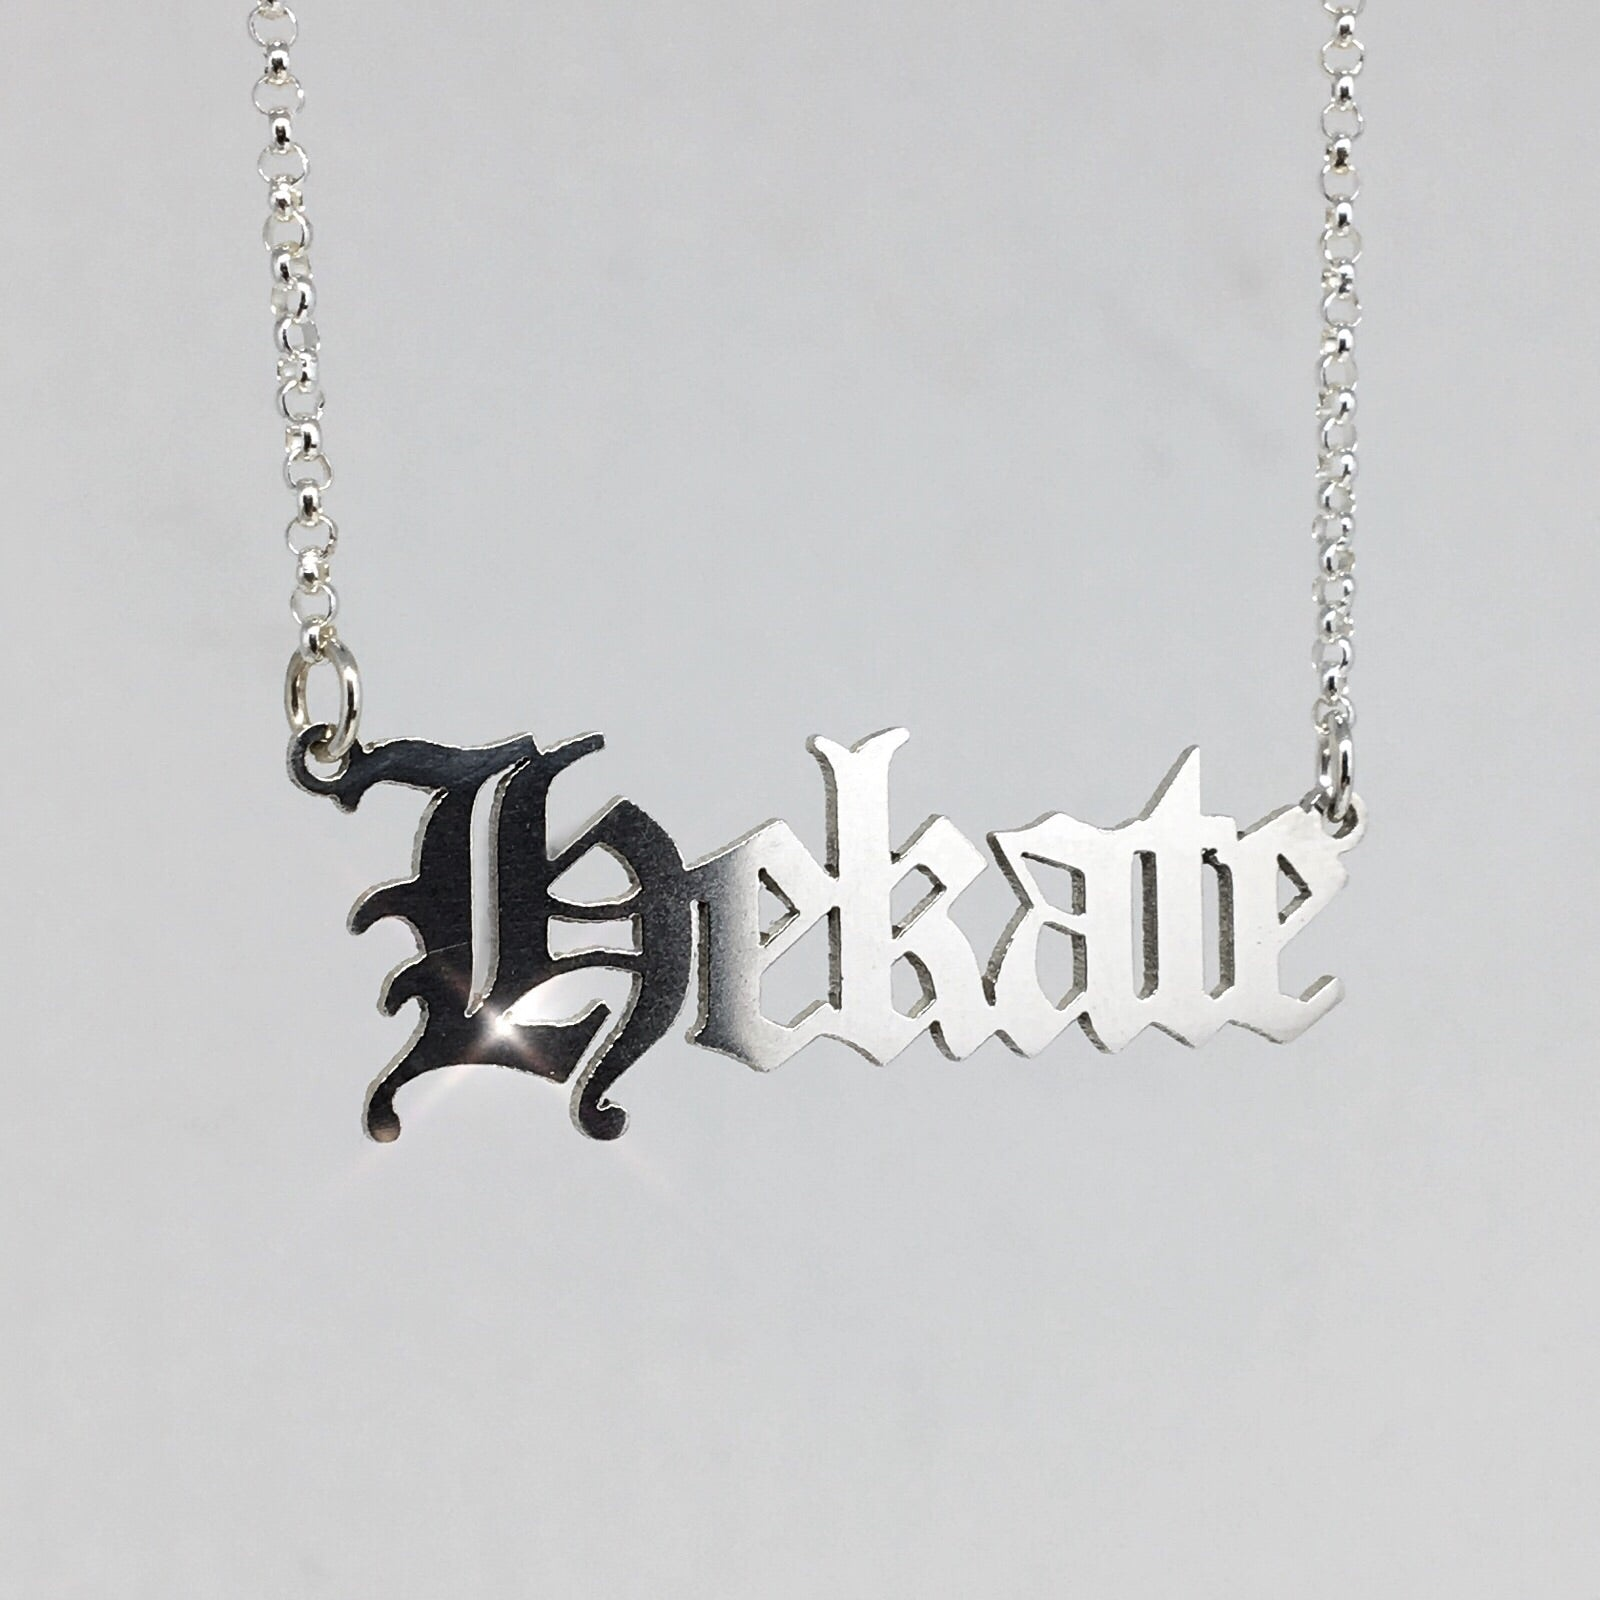 Gothic Blackletter Hekate Nameplate necklace in sterling silver